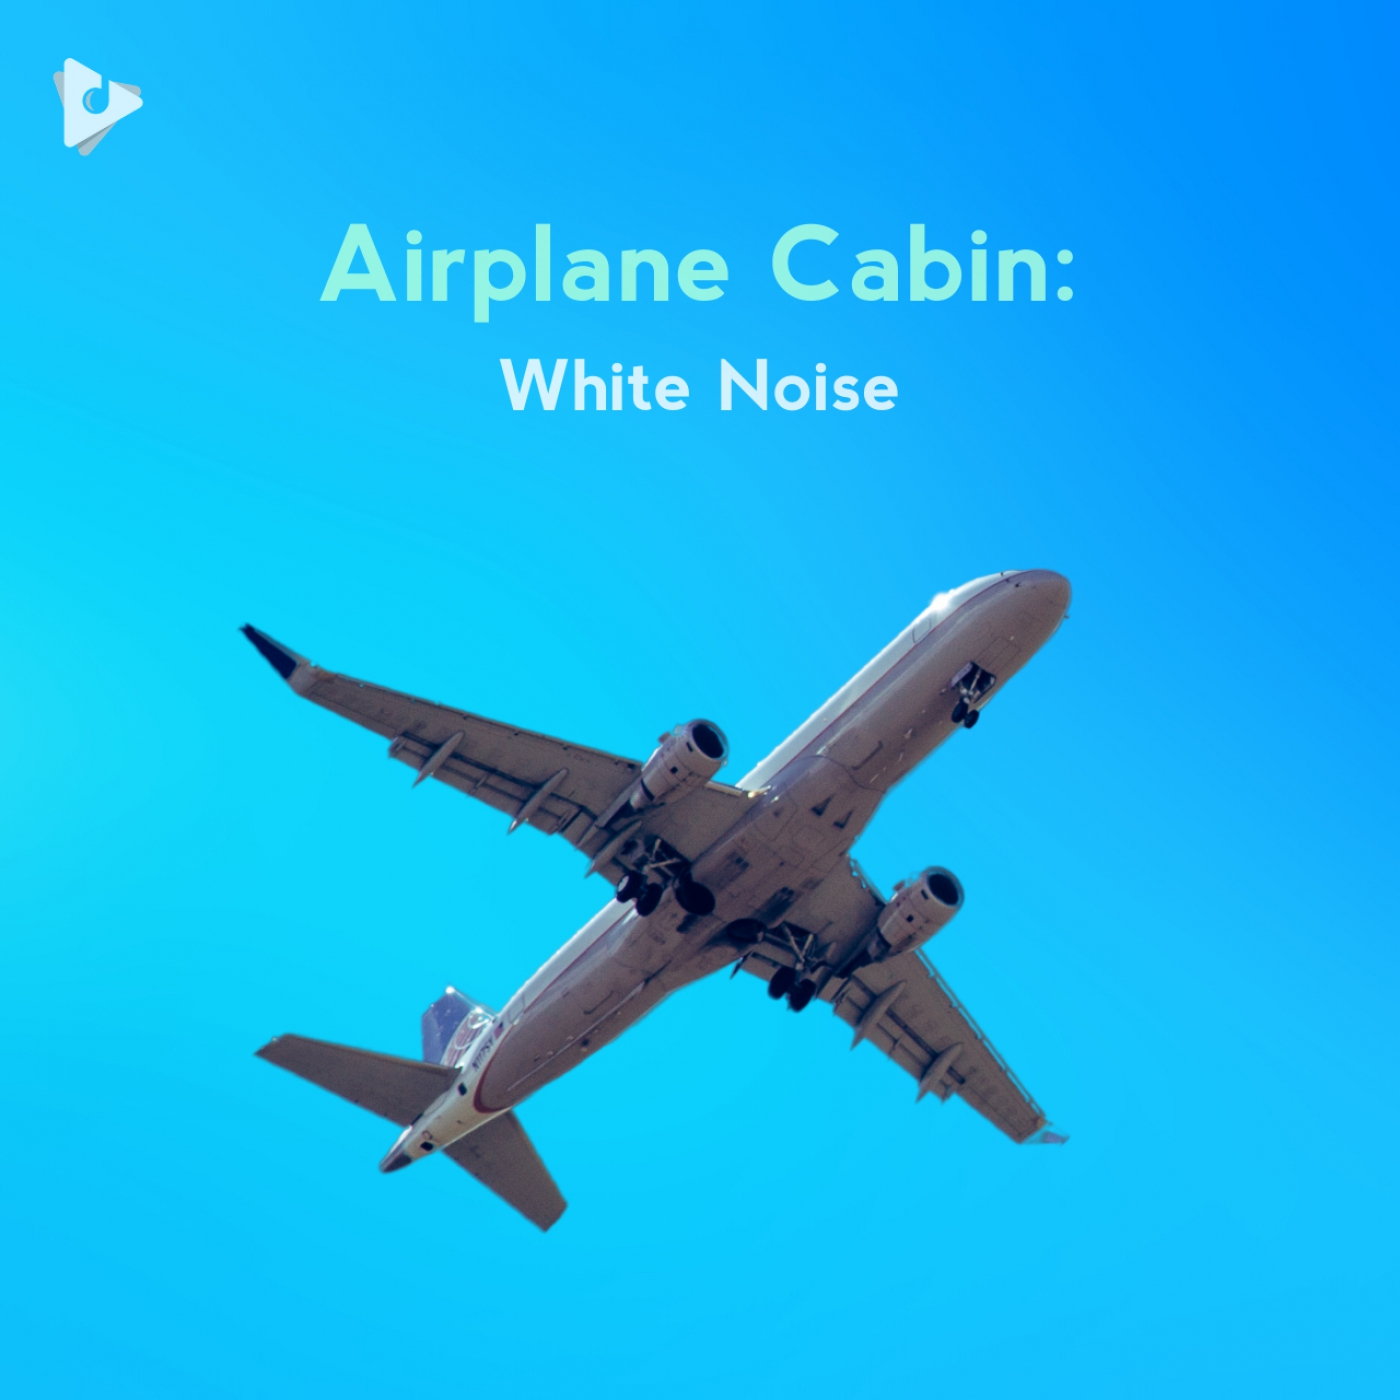 Airplane Cabin: White Noise